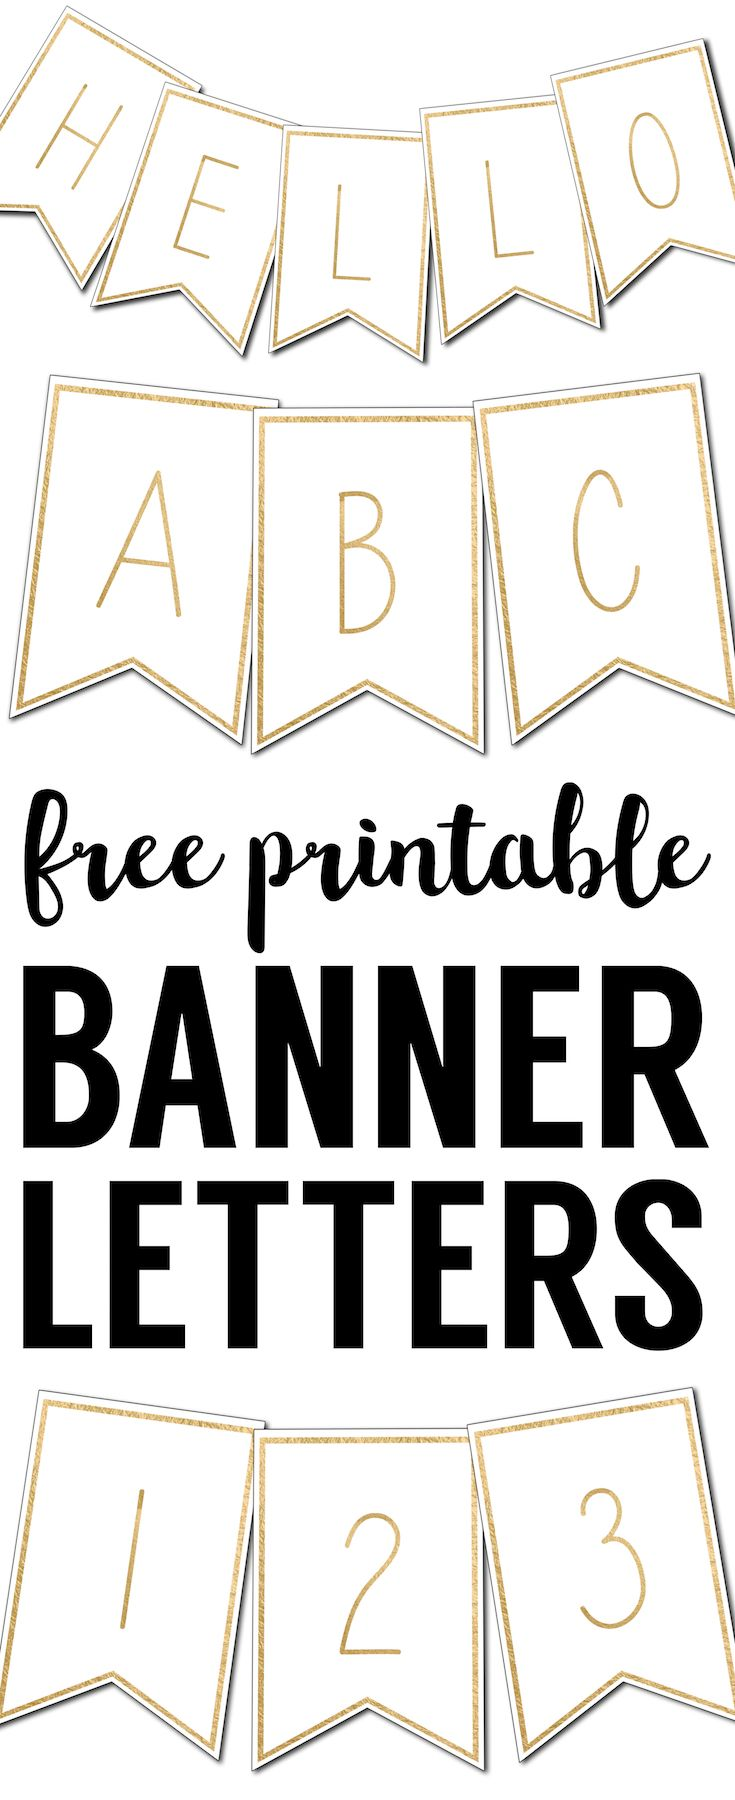 Free Printable Banner Letters Templates For My Inner Craftster